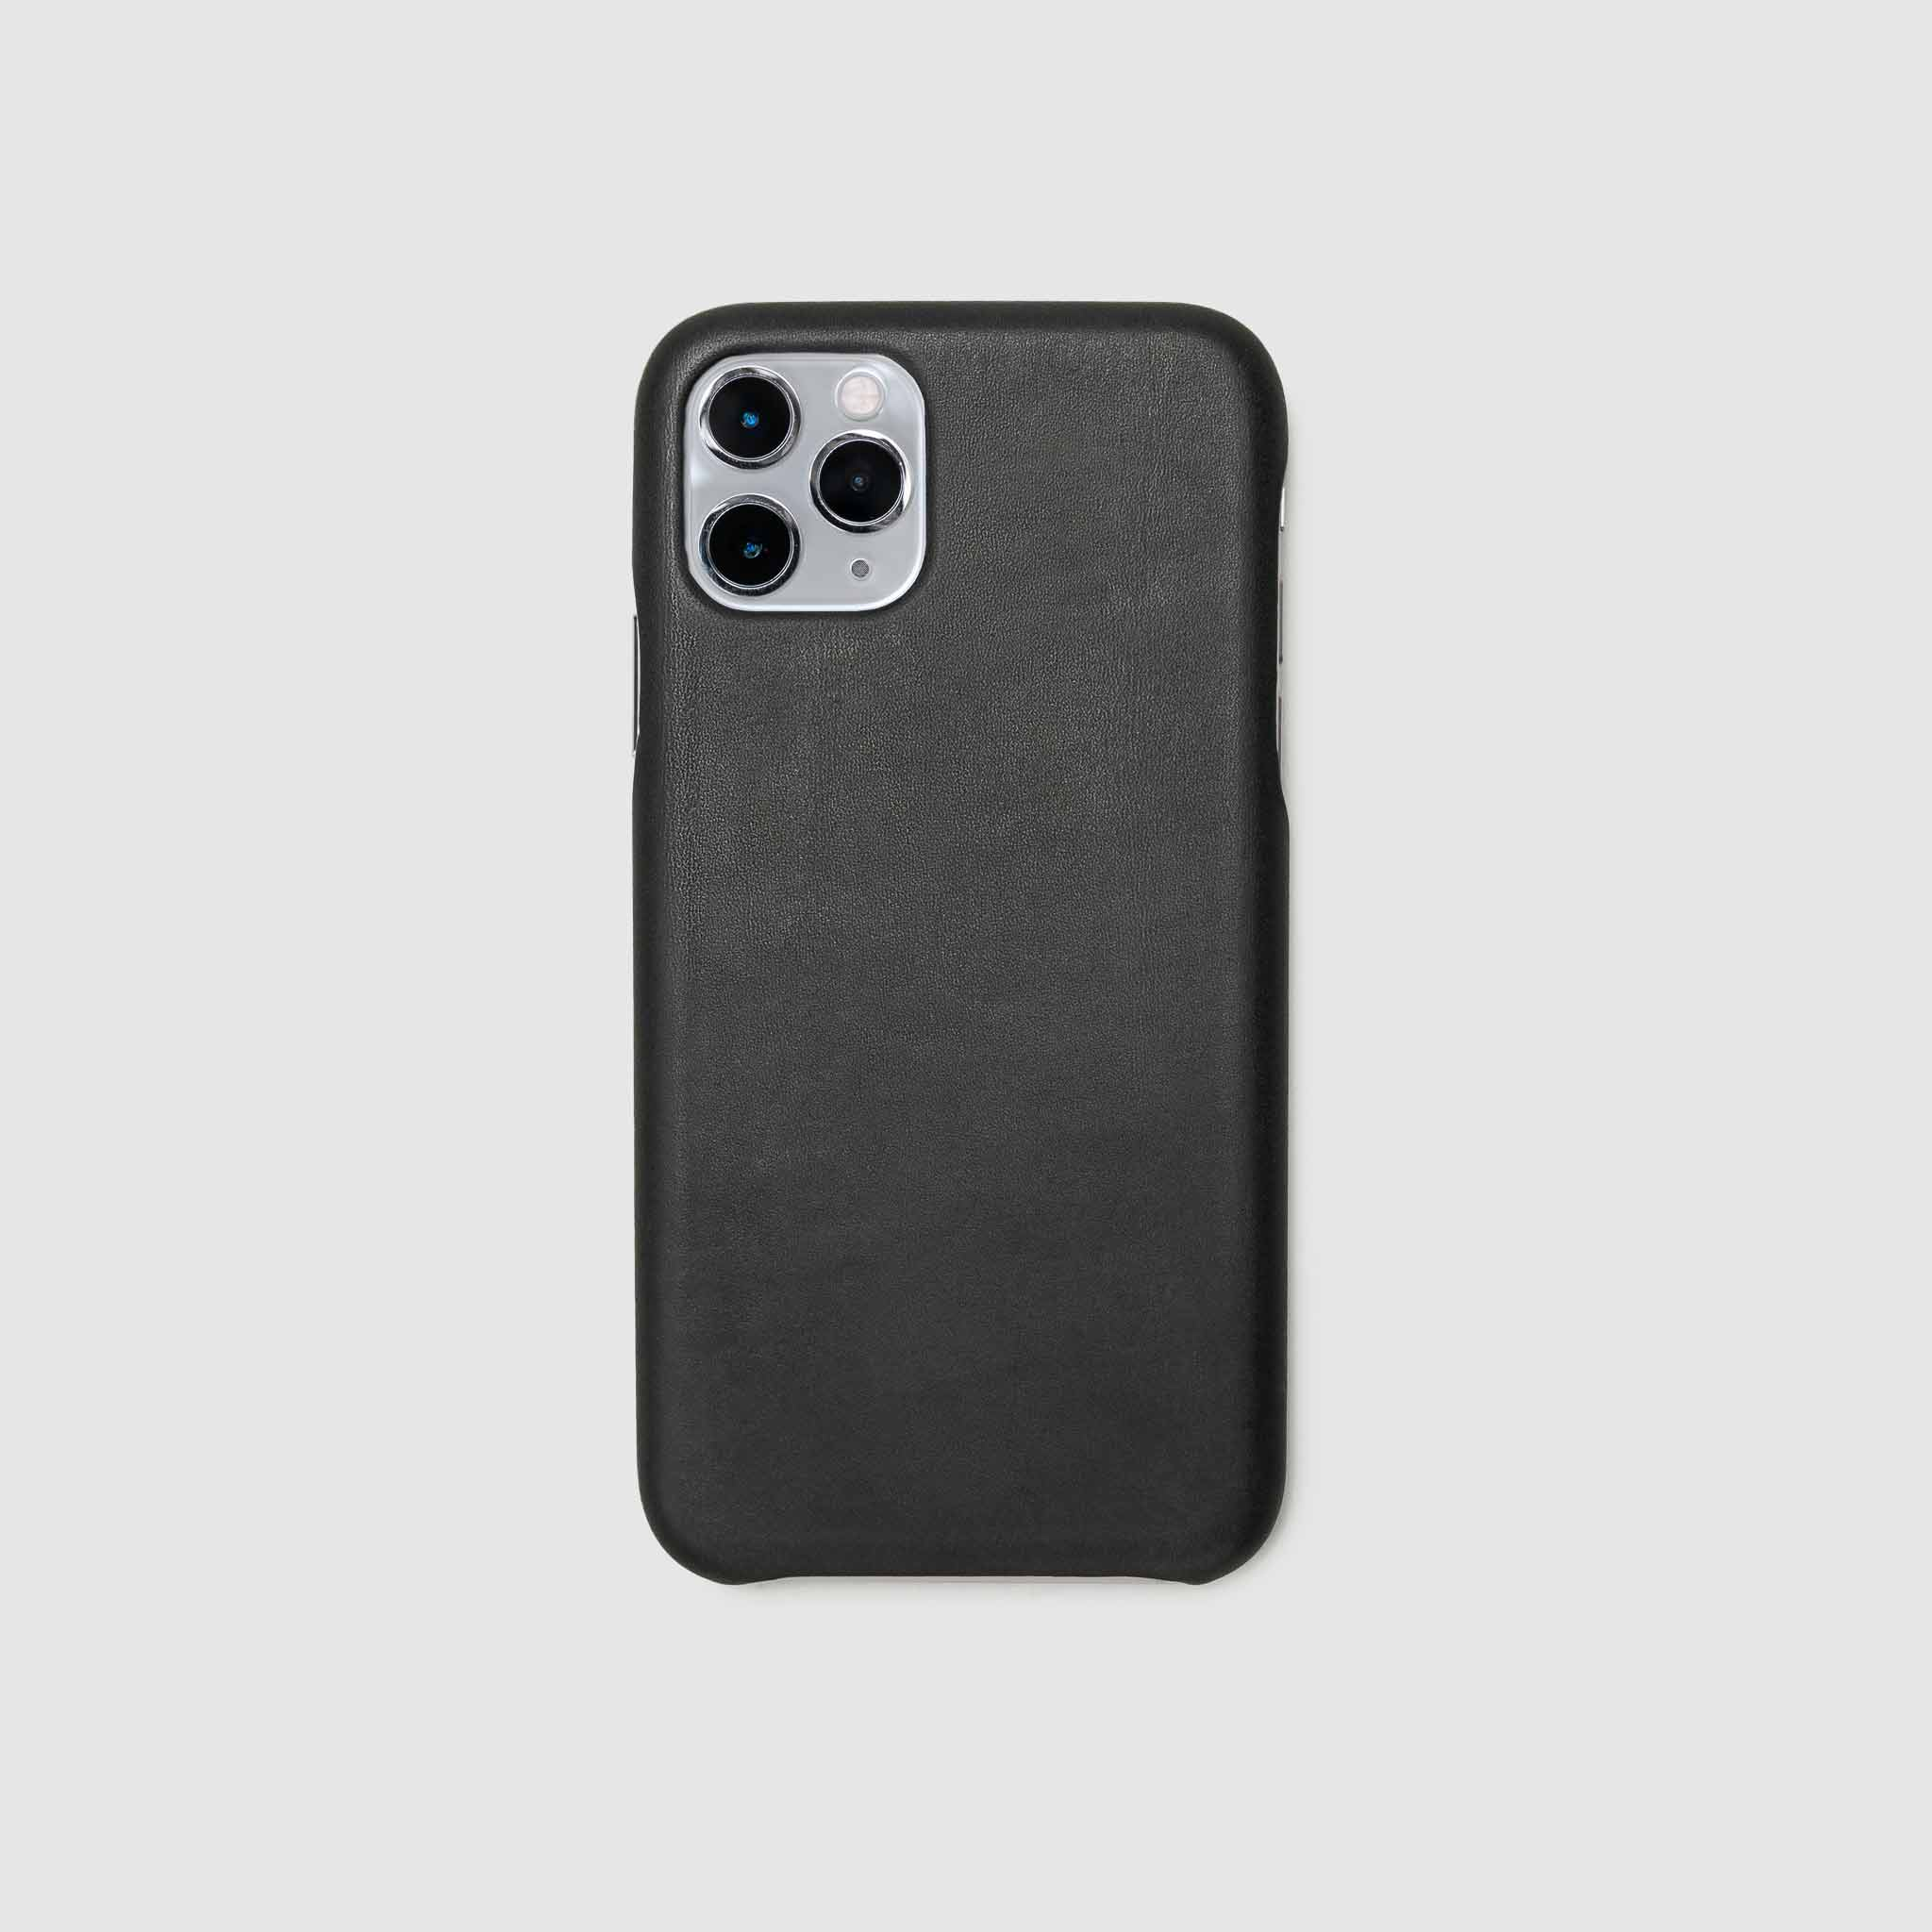 anson calder iphone case french calfskin 11 eleven pro max leather !iphone11pro-iphone11promax  *hover _black